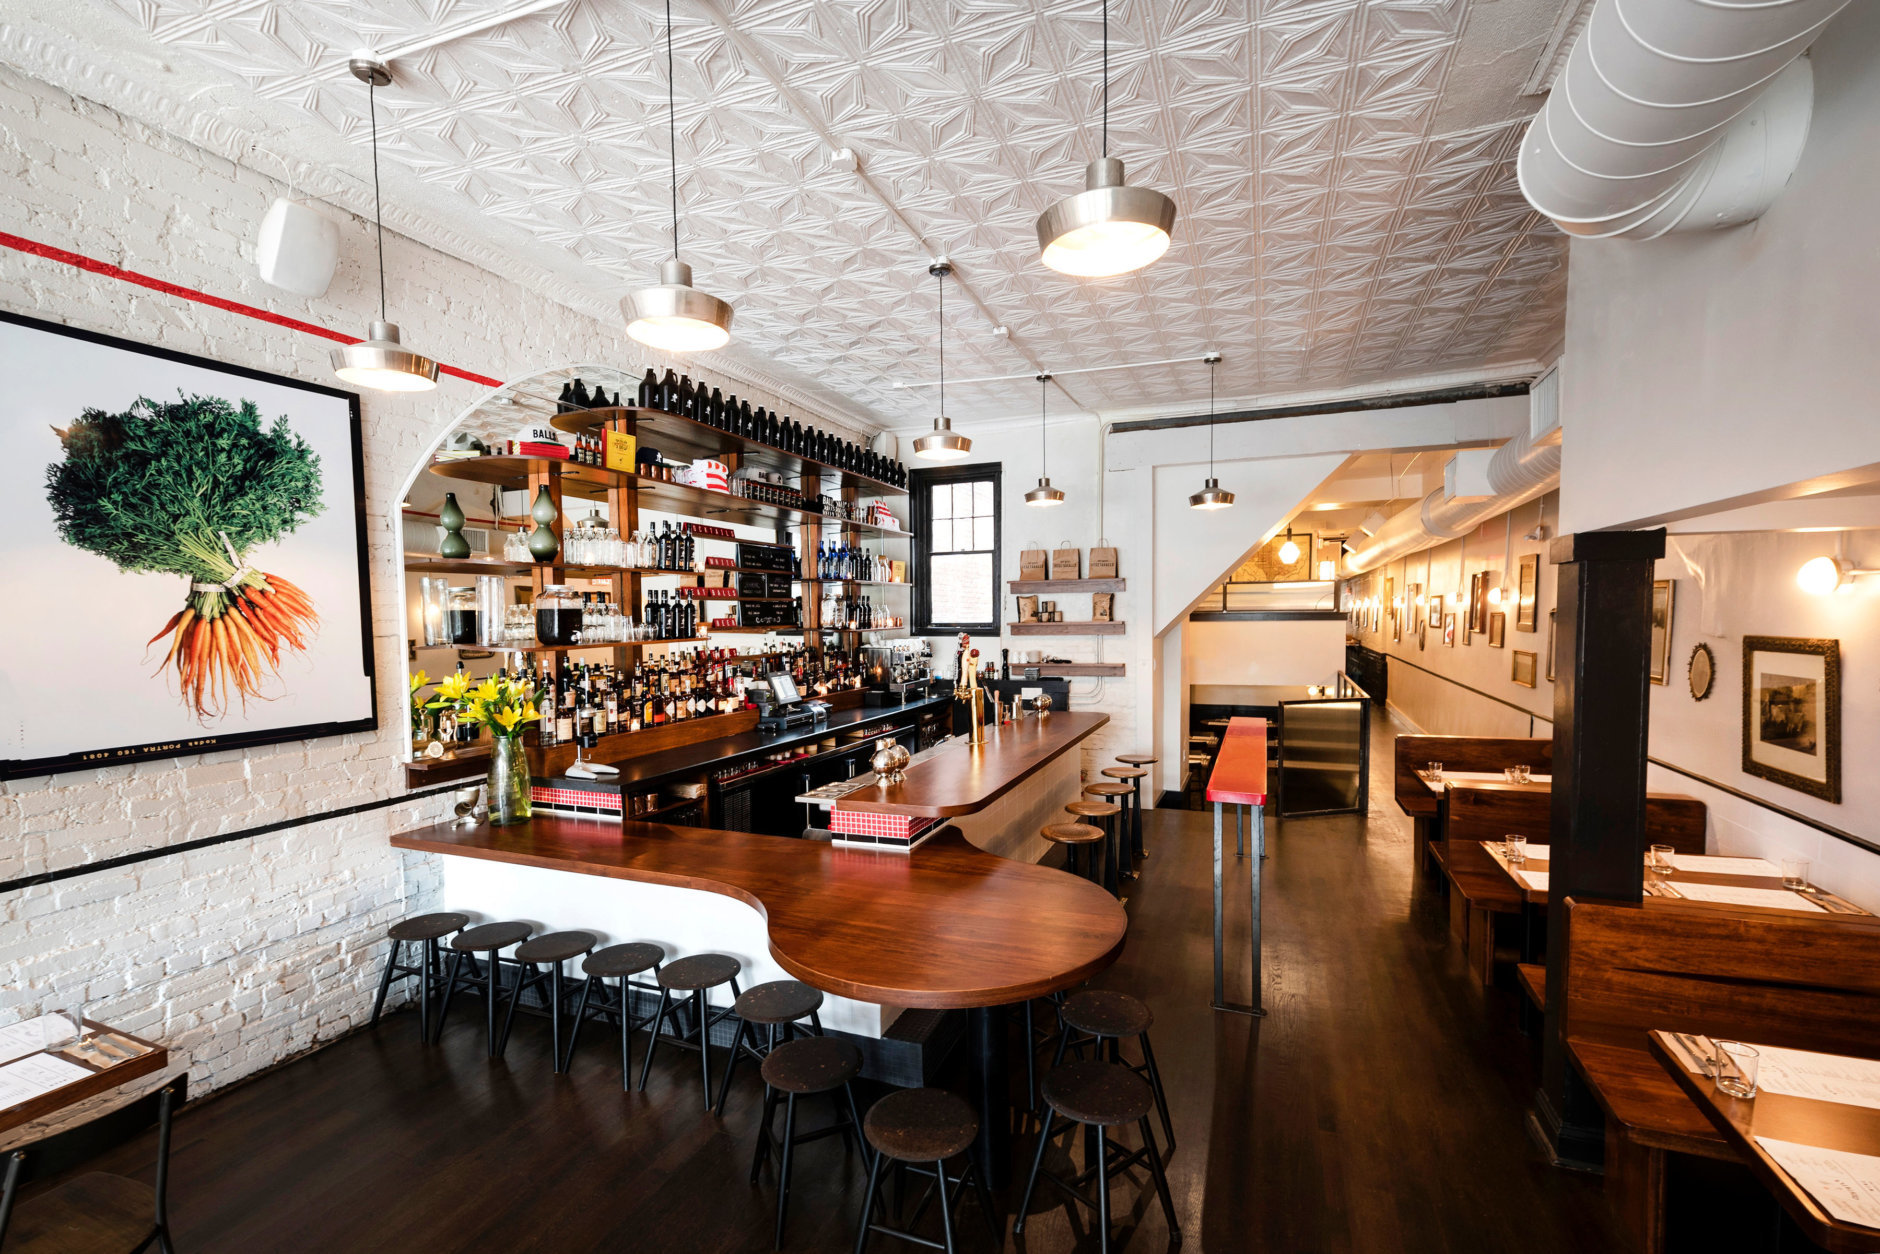 The Meatball Shop took the space formerly occupied by Cork Wine Bar, which consolidated the wine bar with its 14th Street Cork Market last year. (Courtesy Liz Clayman)